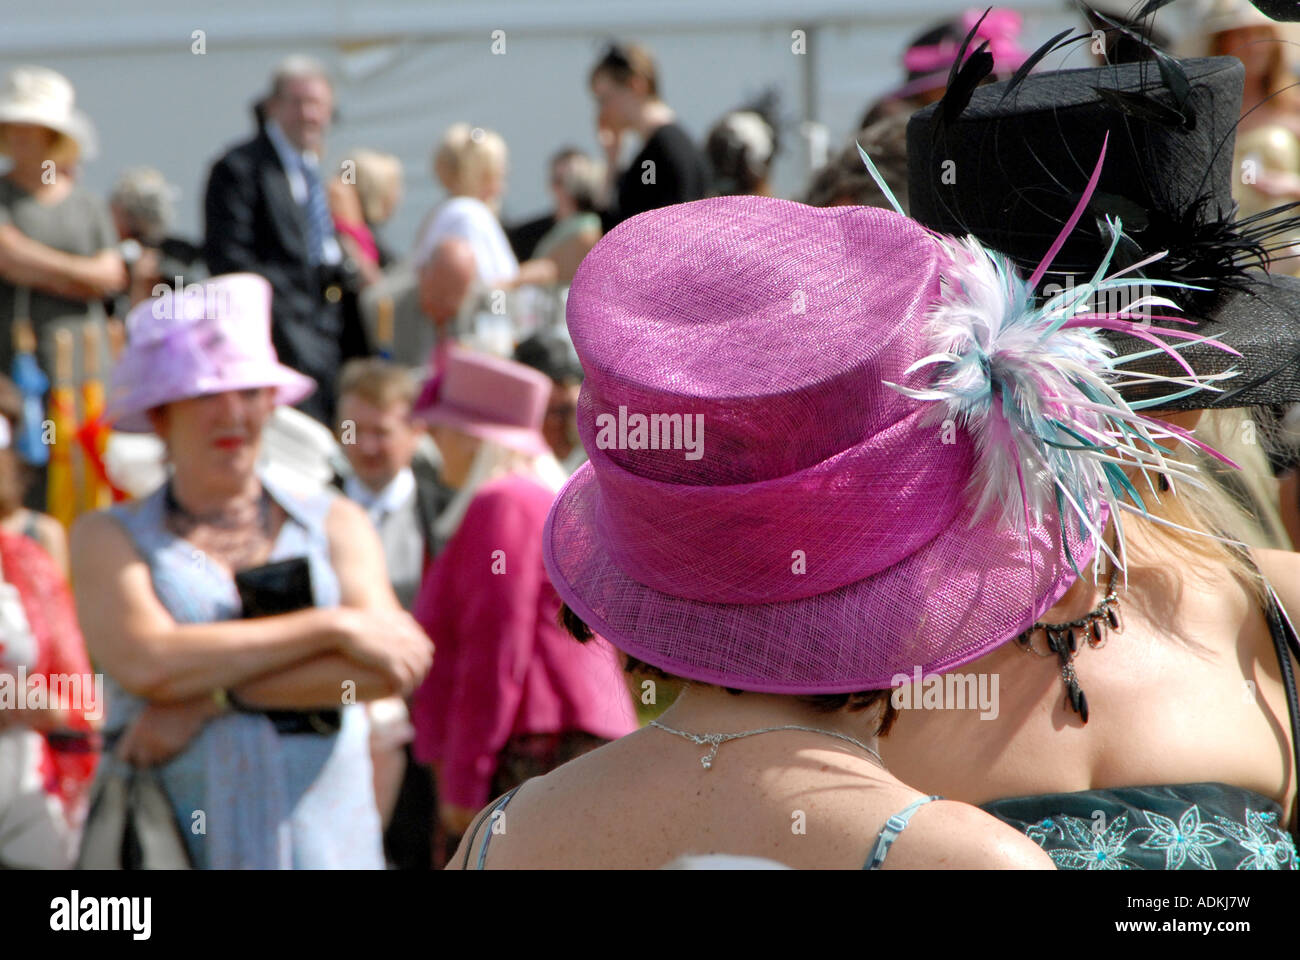 Royal Ascot Ladies Day at the Royal Ascot Racecourse Thursday 21st June 2007 Stock Photo